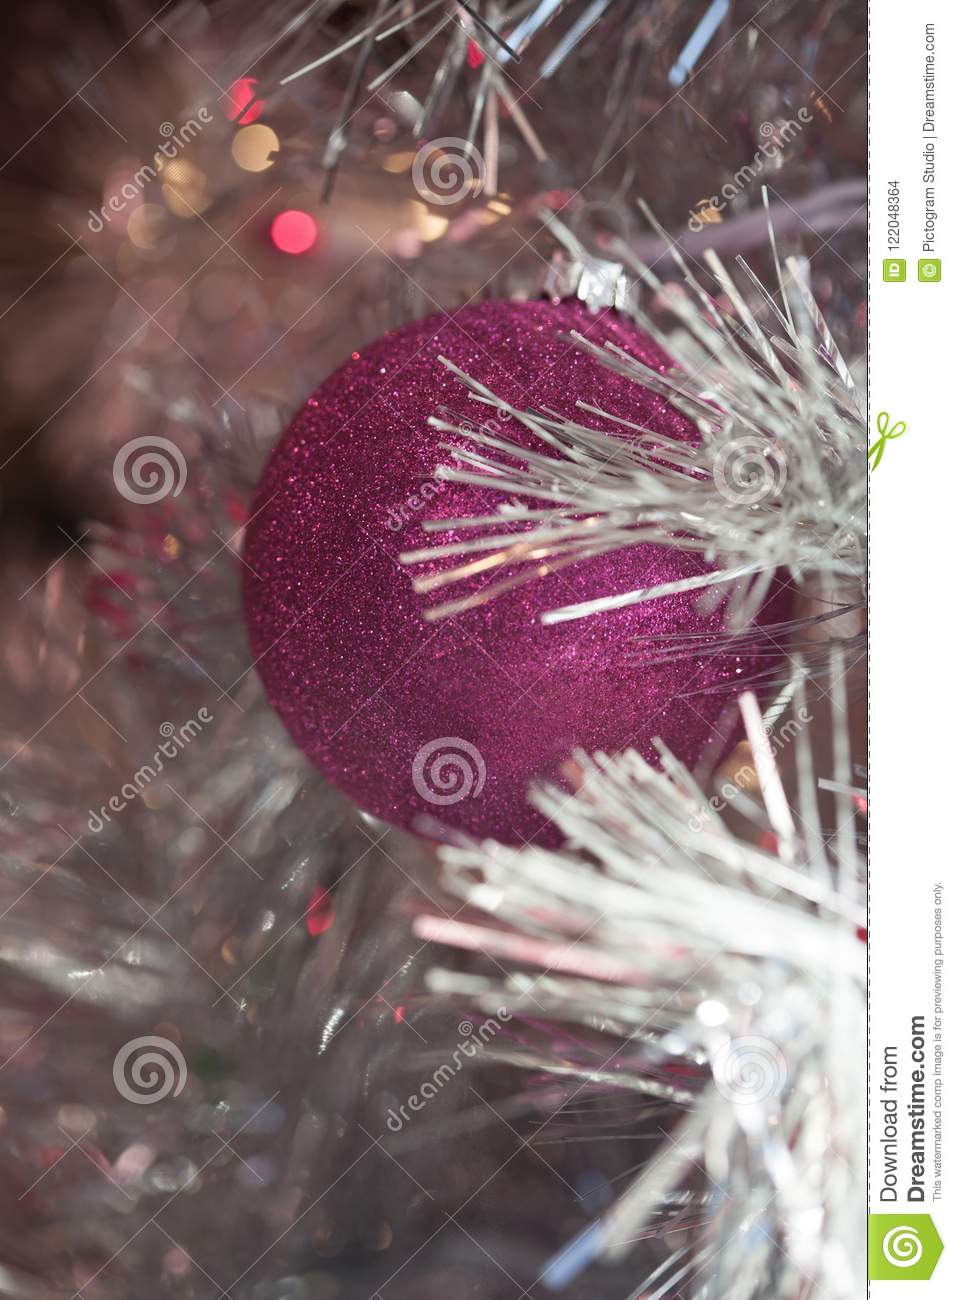 winter holiday silver white tinsel christmas tree with pink magenta ornaments and lights